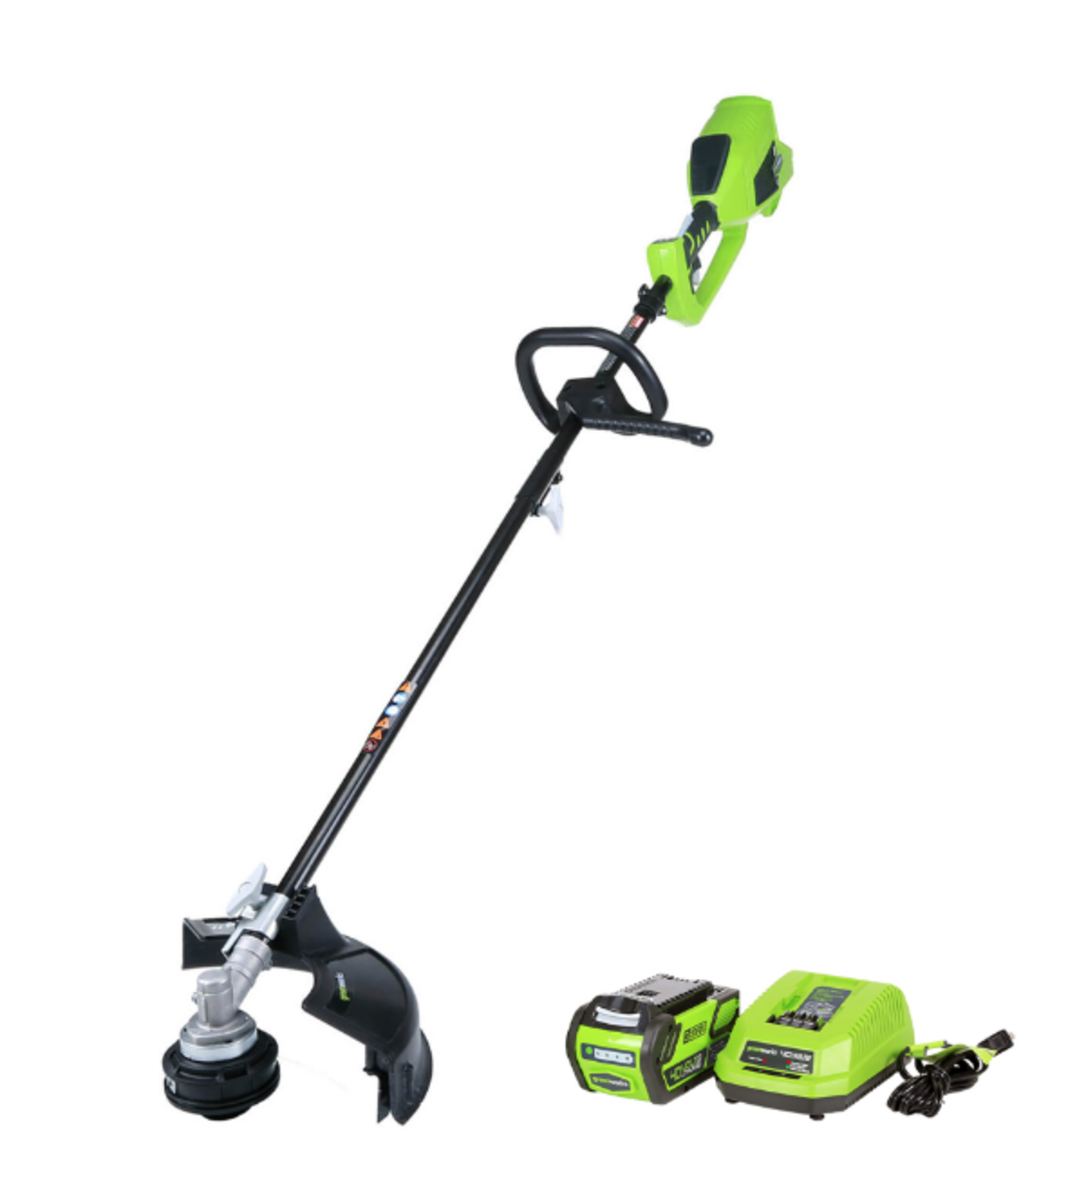 Greenworks 14-Inch 40V Cordless String Trimmer 21362: Pros and Cons From an Owner